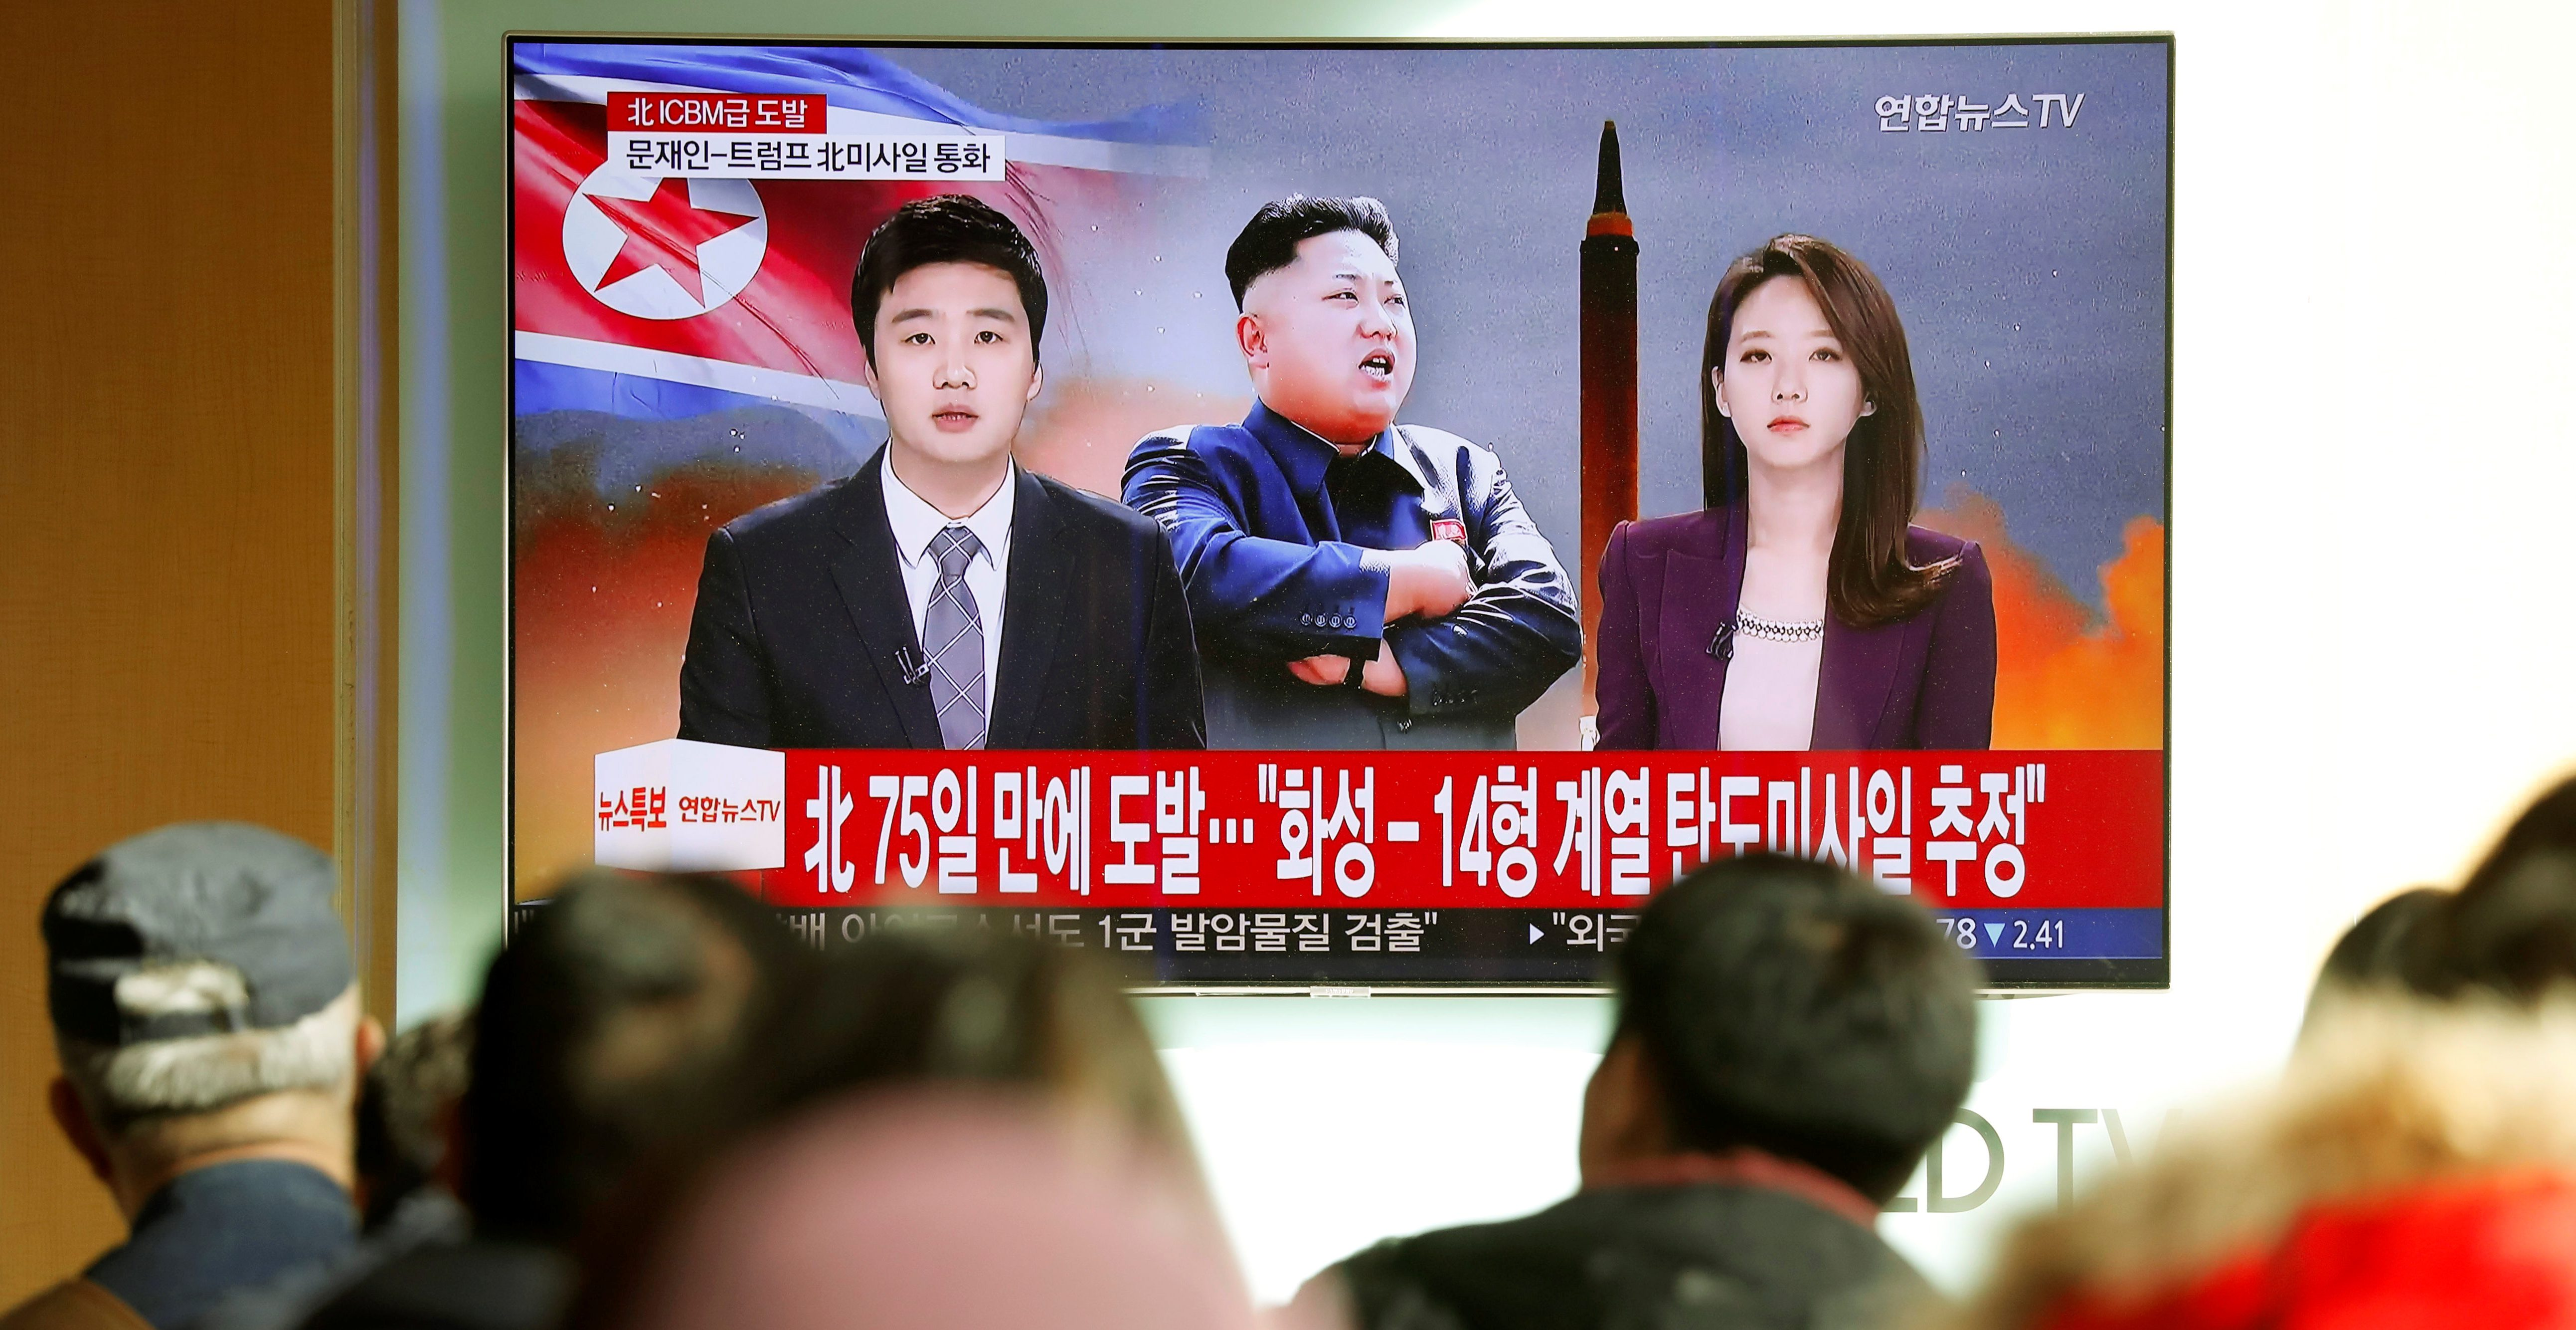 People watch a TV broadcasting a news report on North Korea firing what appeared to be an intercontinental ballistic missile (ICBM) that landed close to Japan, in Seoul, South Korea, November 29, 2017.  REUTERS/Kim Hong-Ji - RC1AB2C23E60